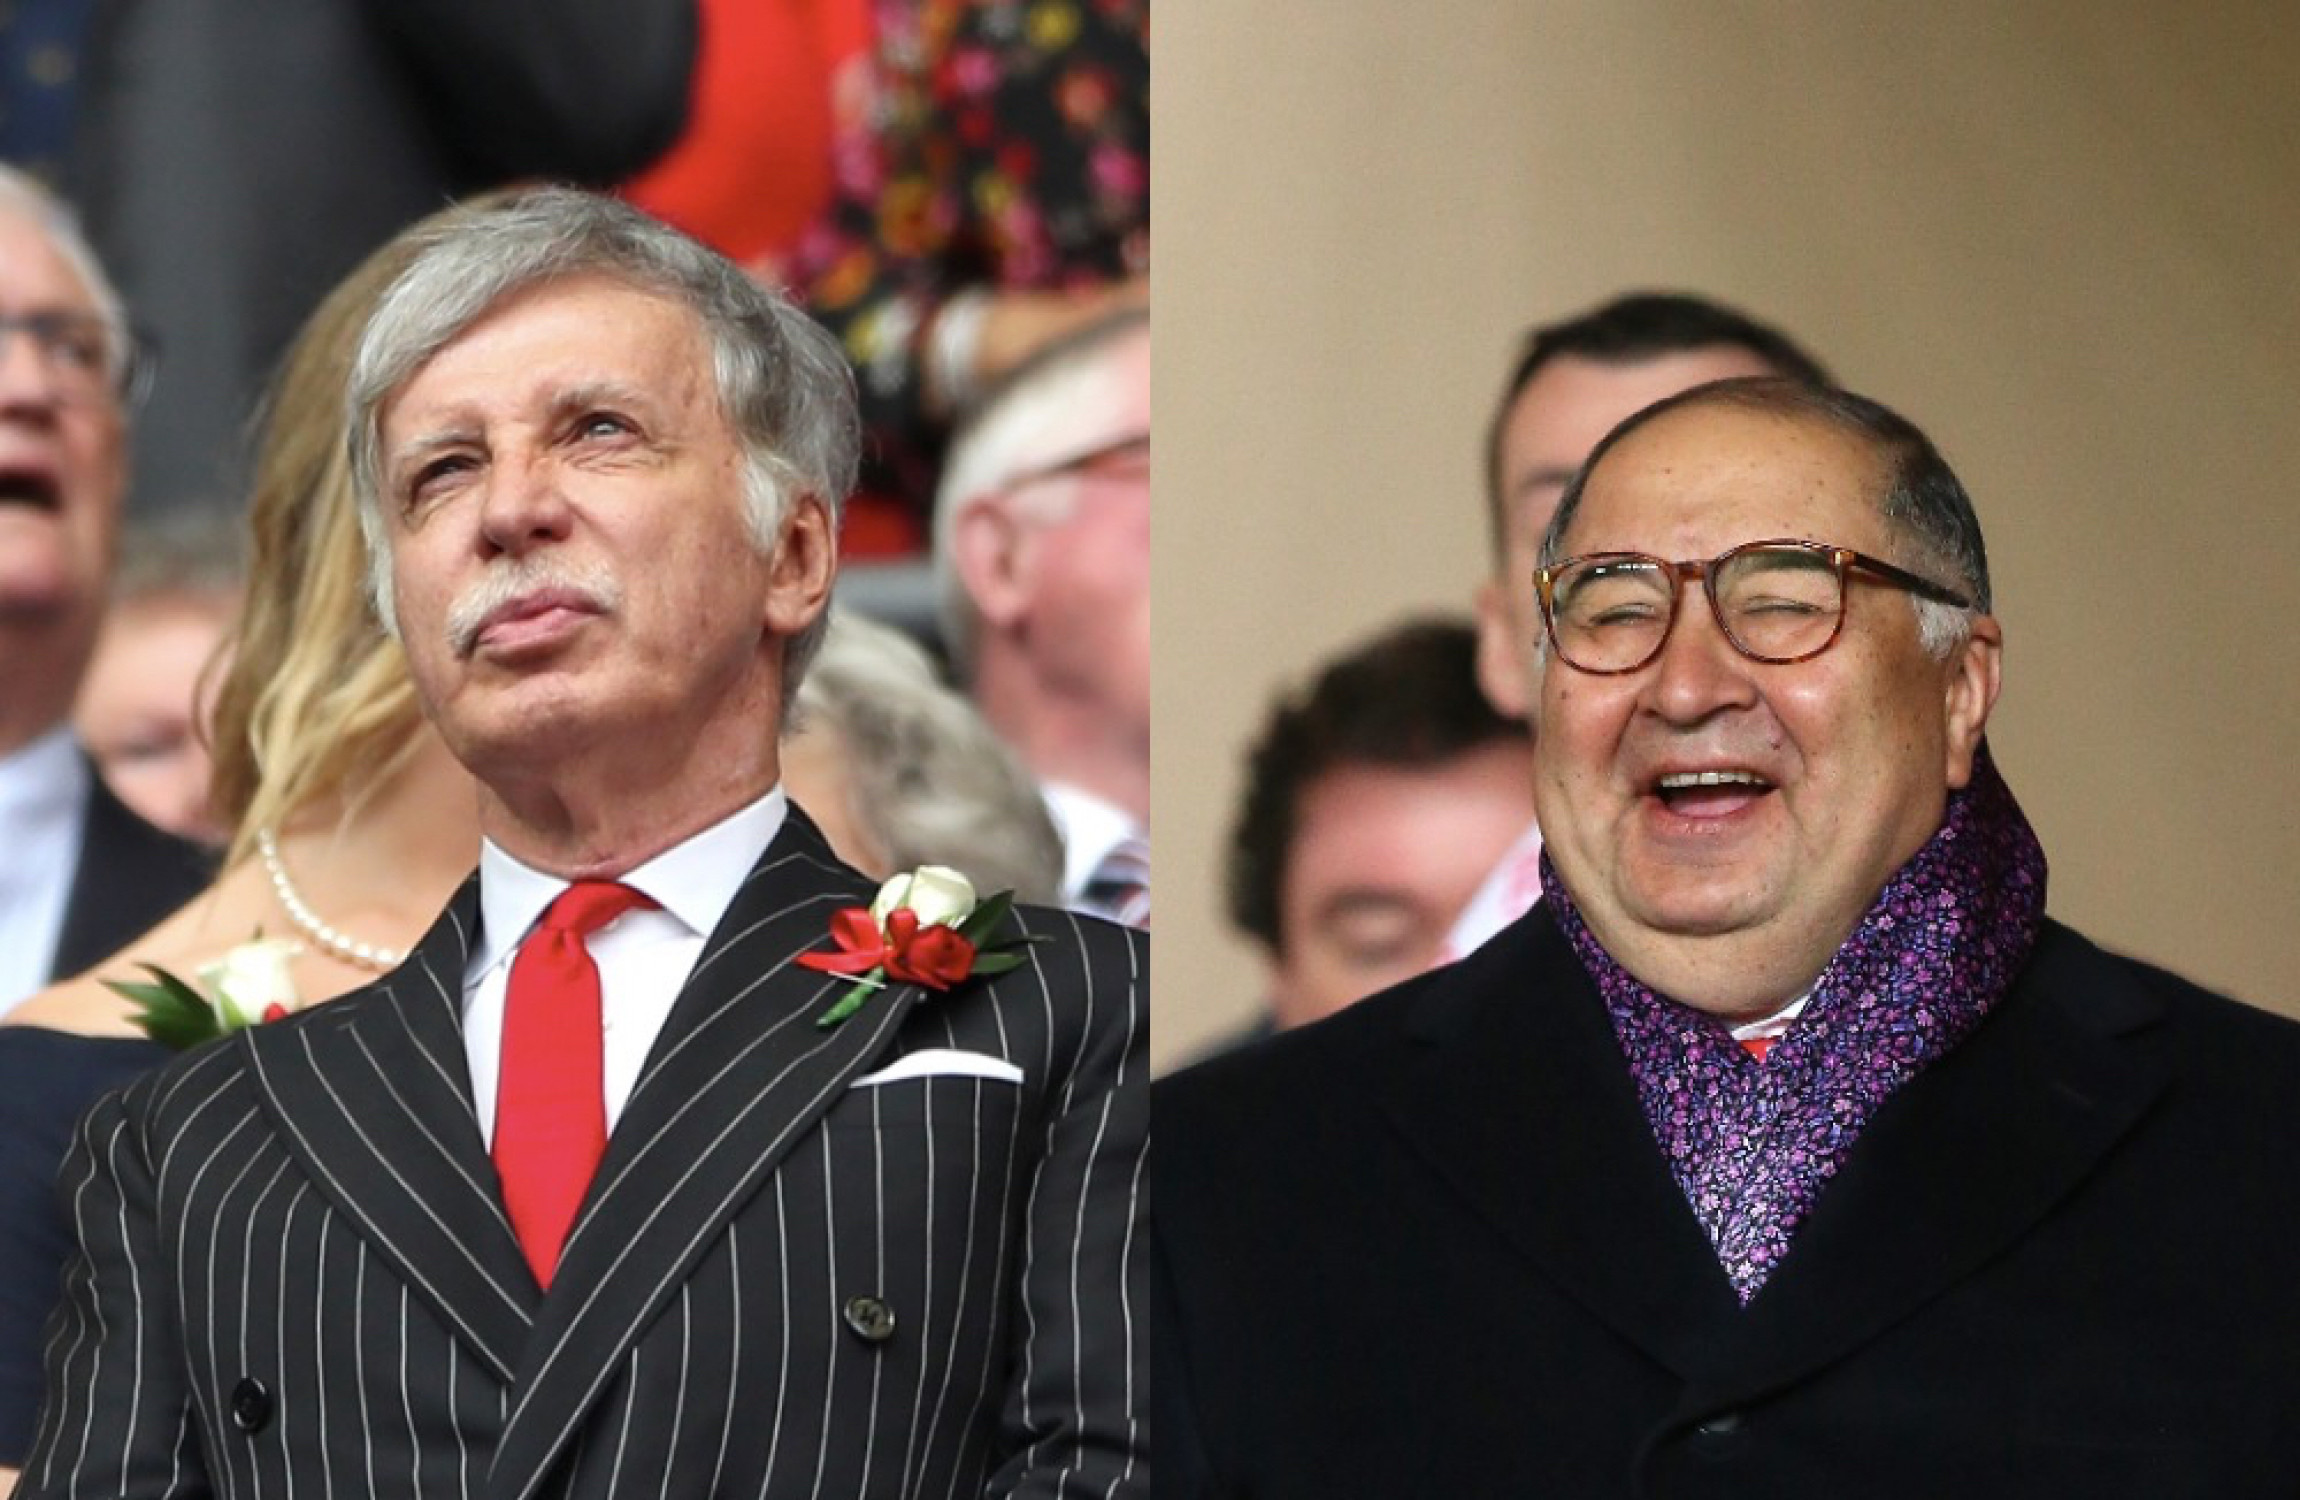 Usmanov won't sell Arsenal stake to Kroenke, £2bn offer still stands